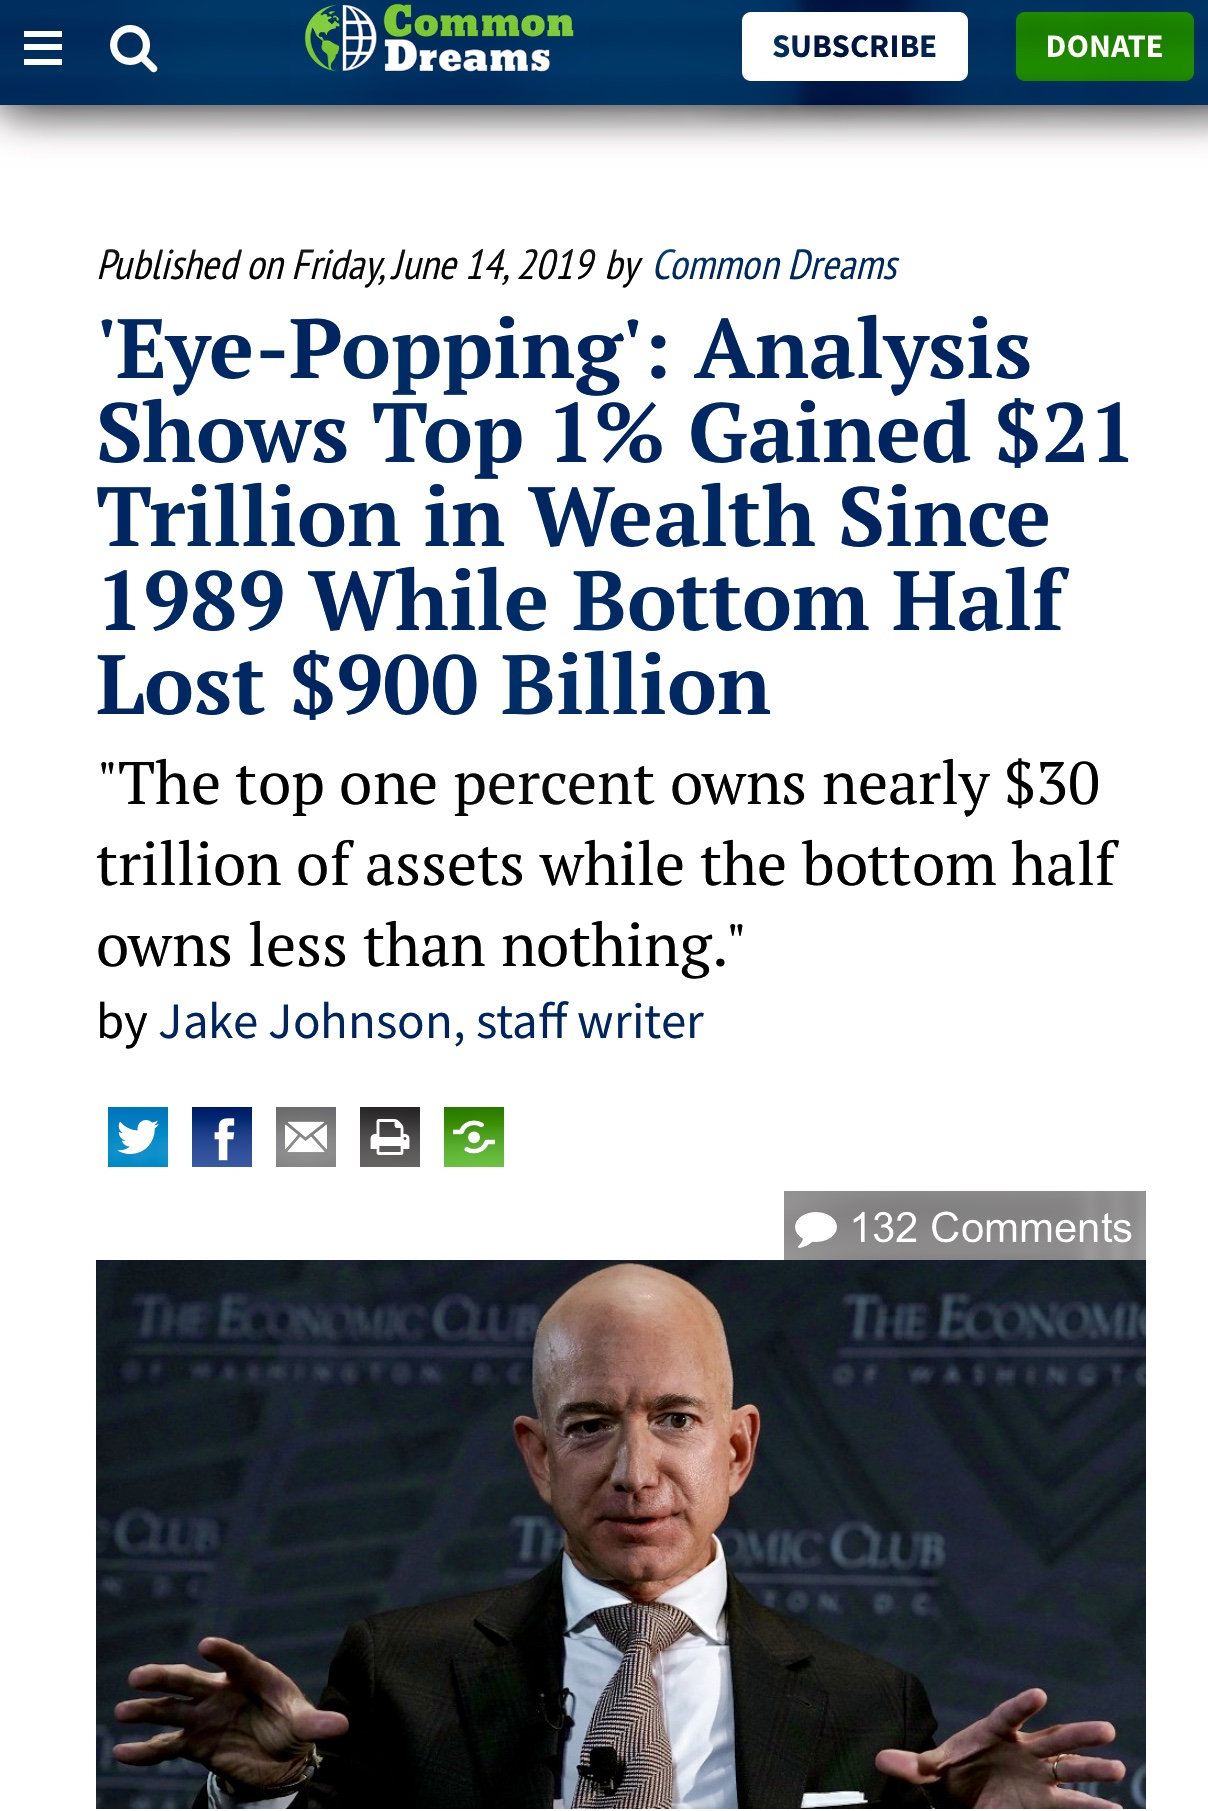 The Top 1% Owns Nearly $30 Trillion of Assets While The Bottom Owns Close To Nothing